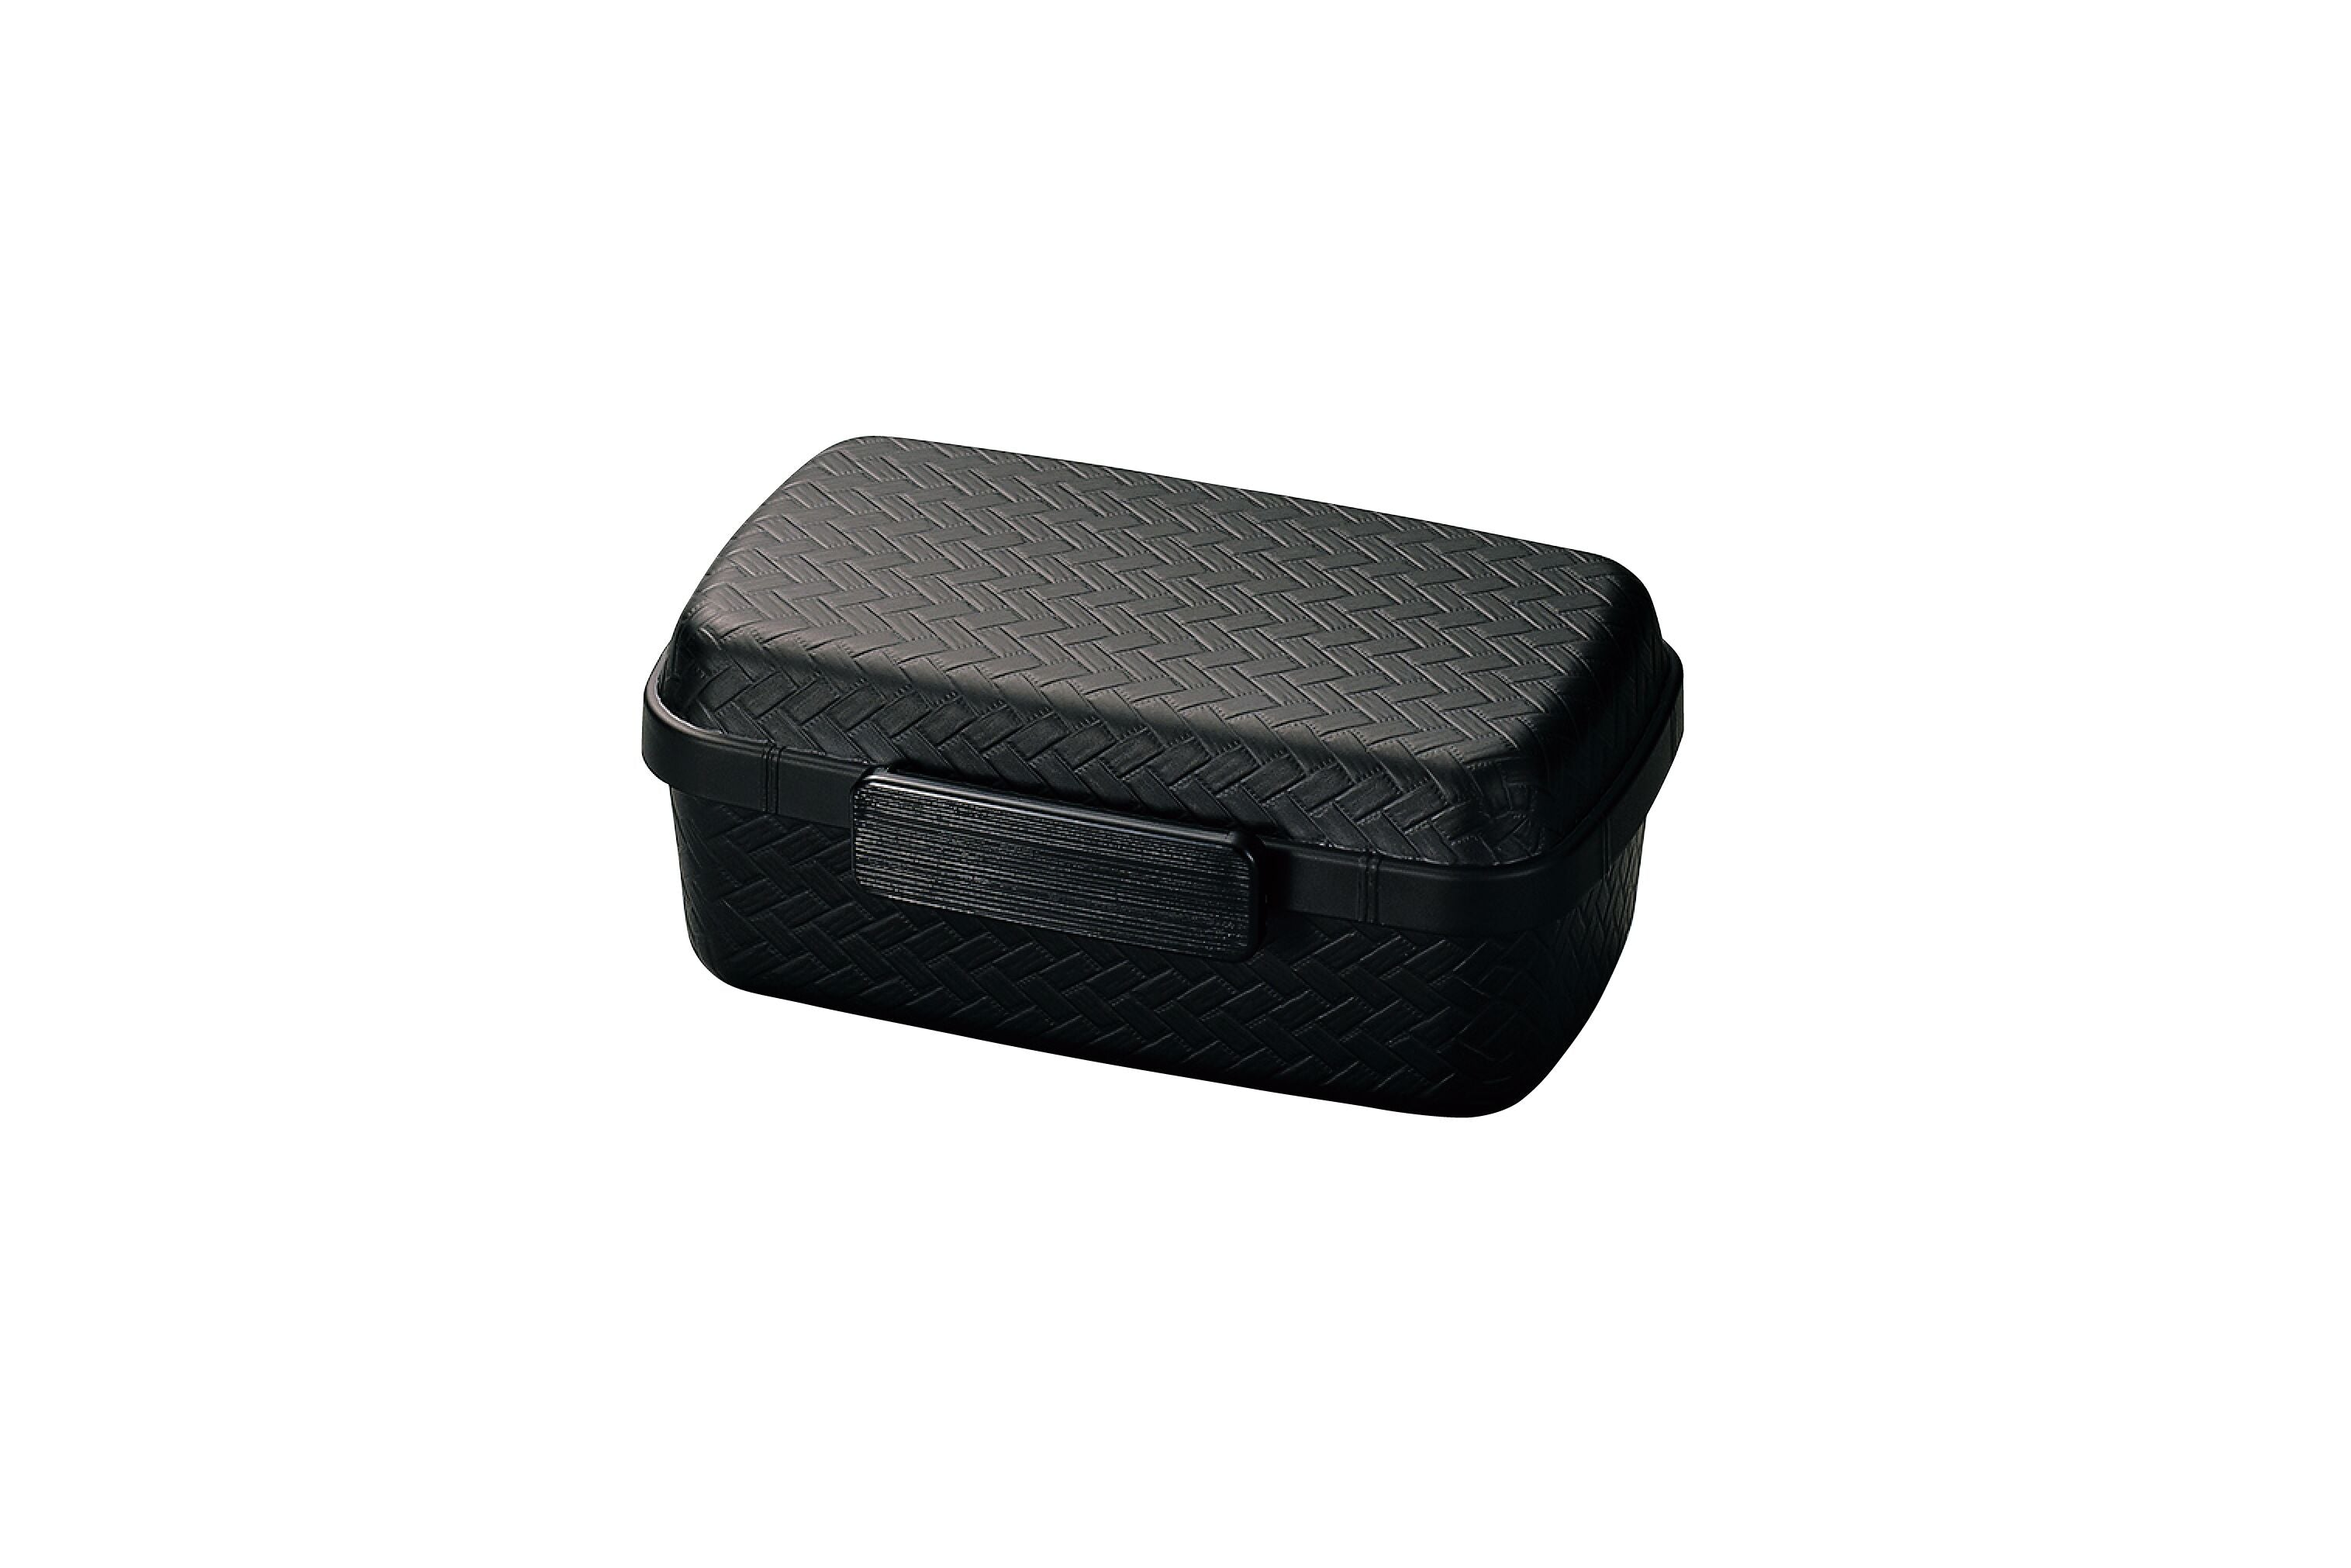 Nuri Ajiro Side Lock Bento Box | Black by Hakoya - Bento&co Japanese Bento Lunch Boxes and Kitchenware Specialists